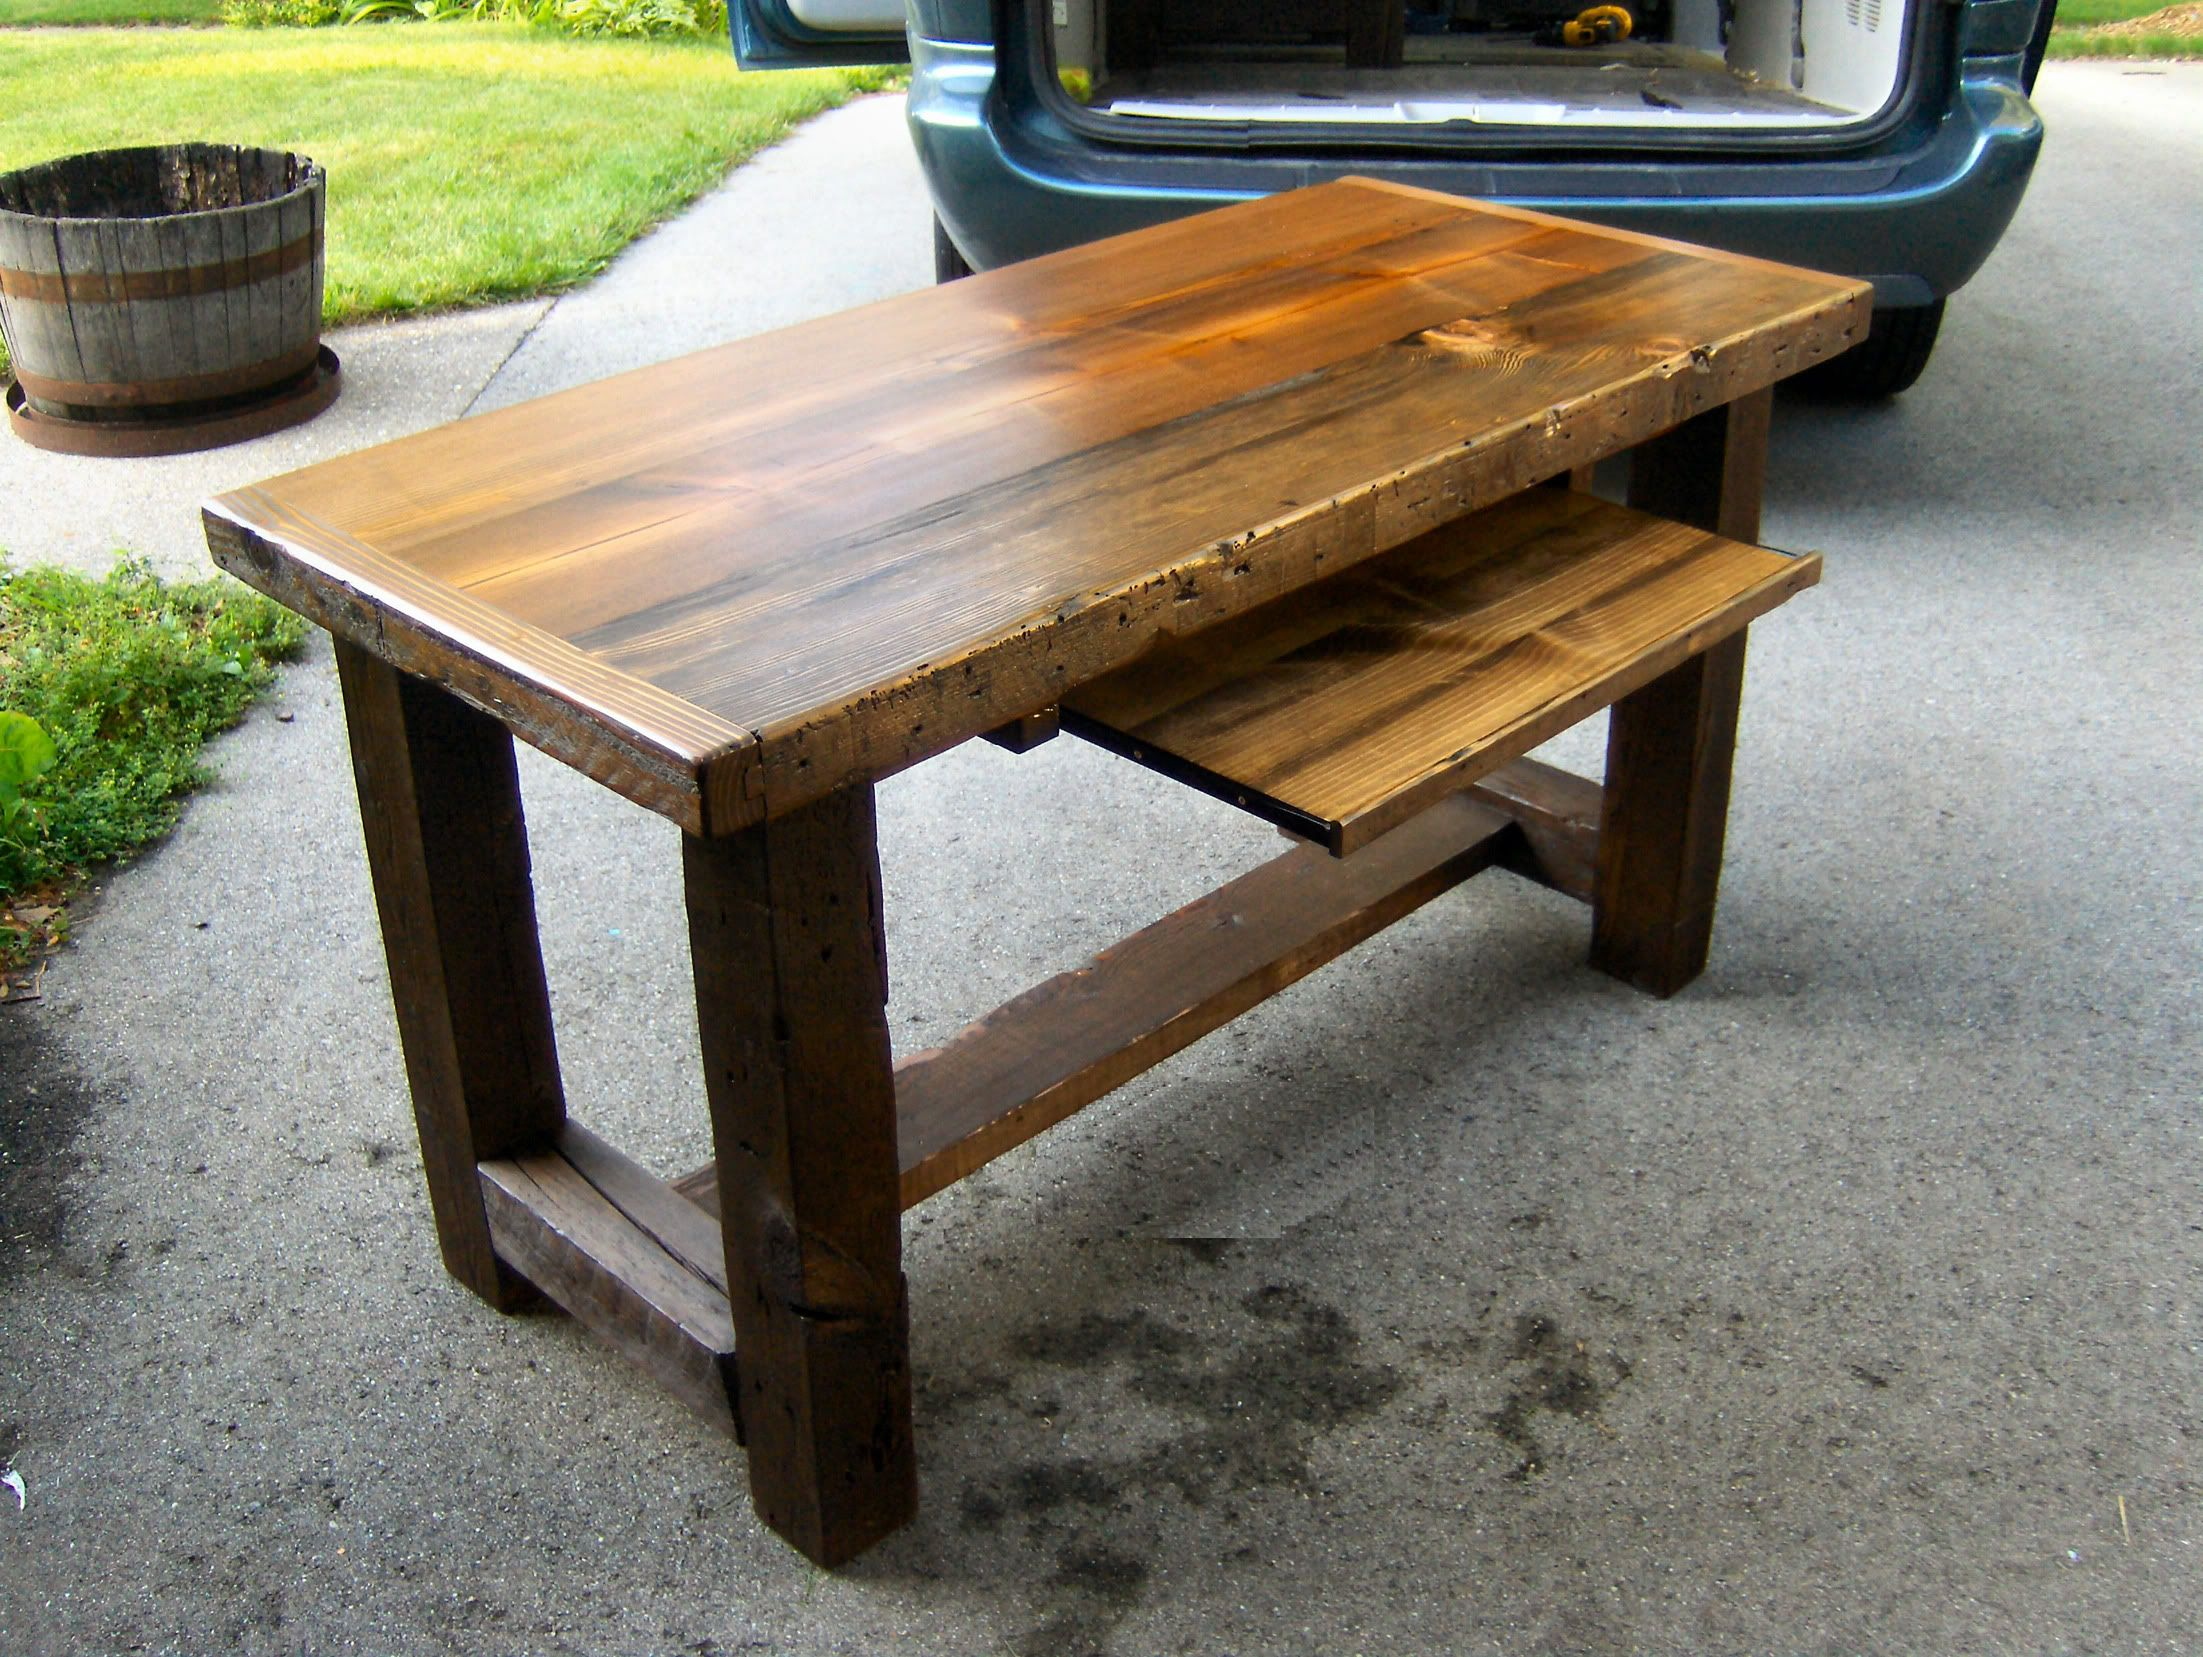 Images about old barn wood furniture on pinterest - Old Barn Wood Desk Not Sure If I Like The Different Materials Wrapping The Top